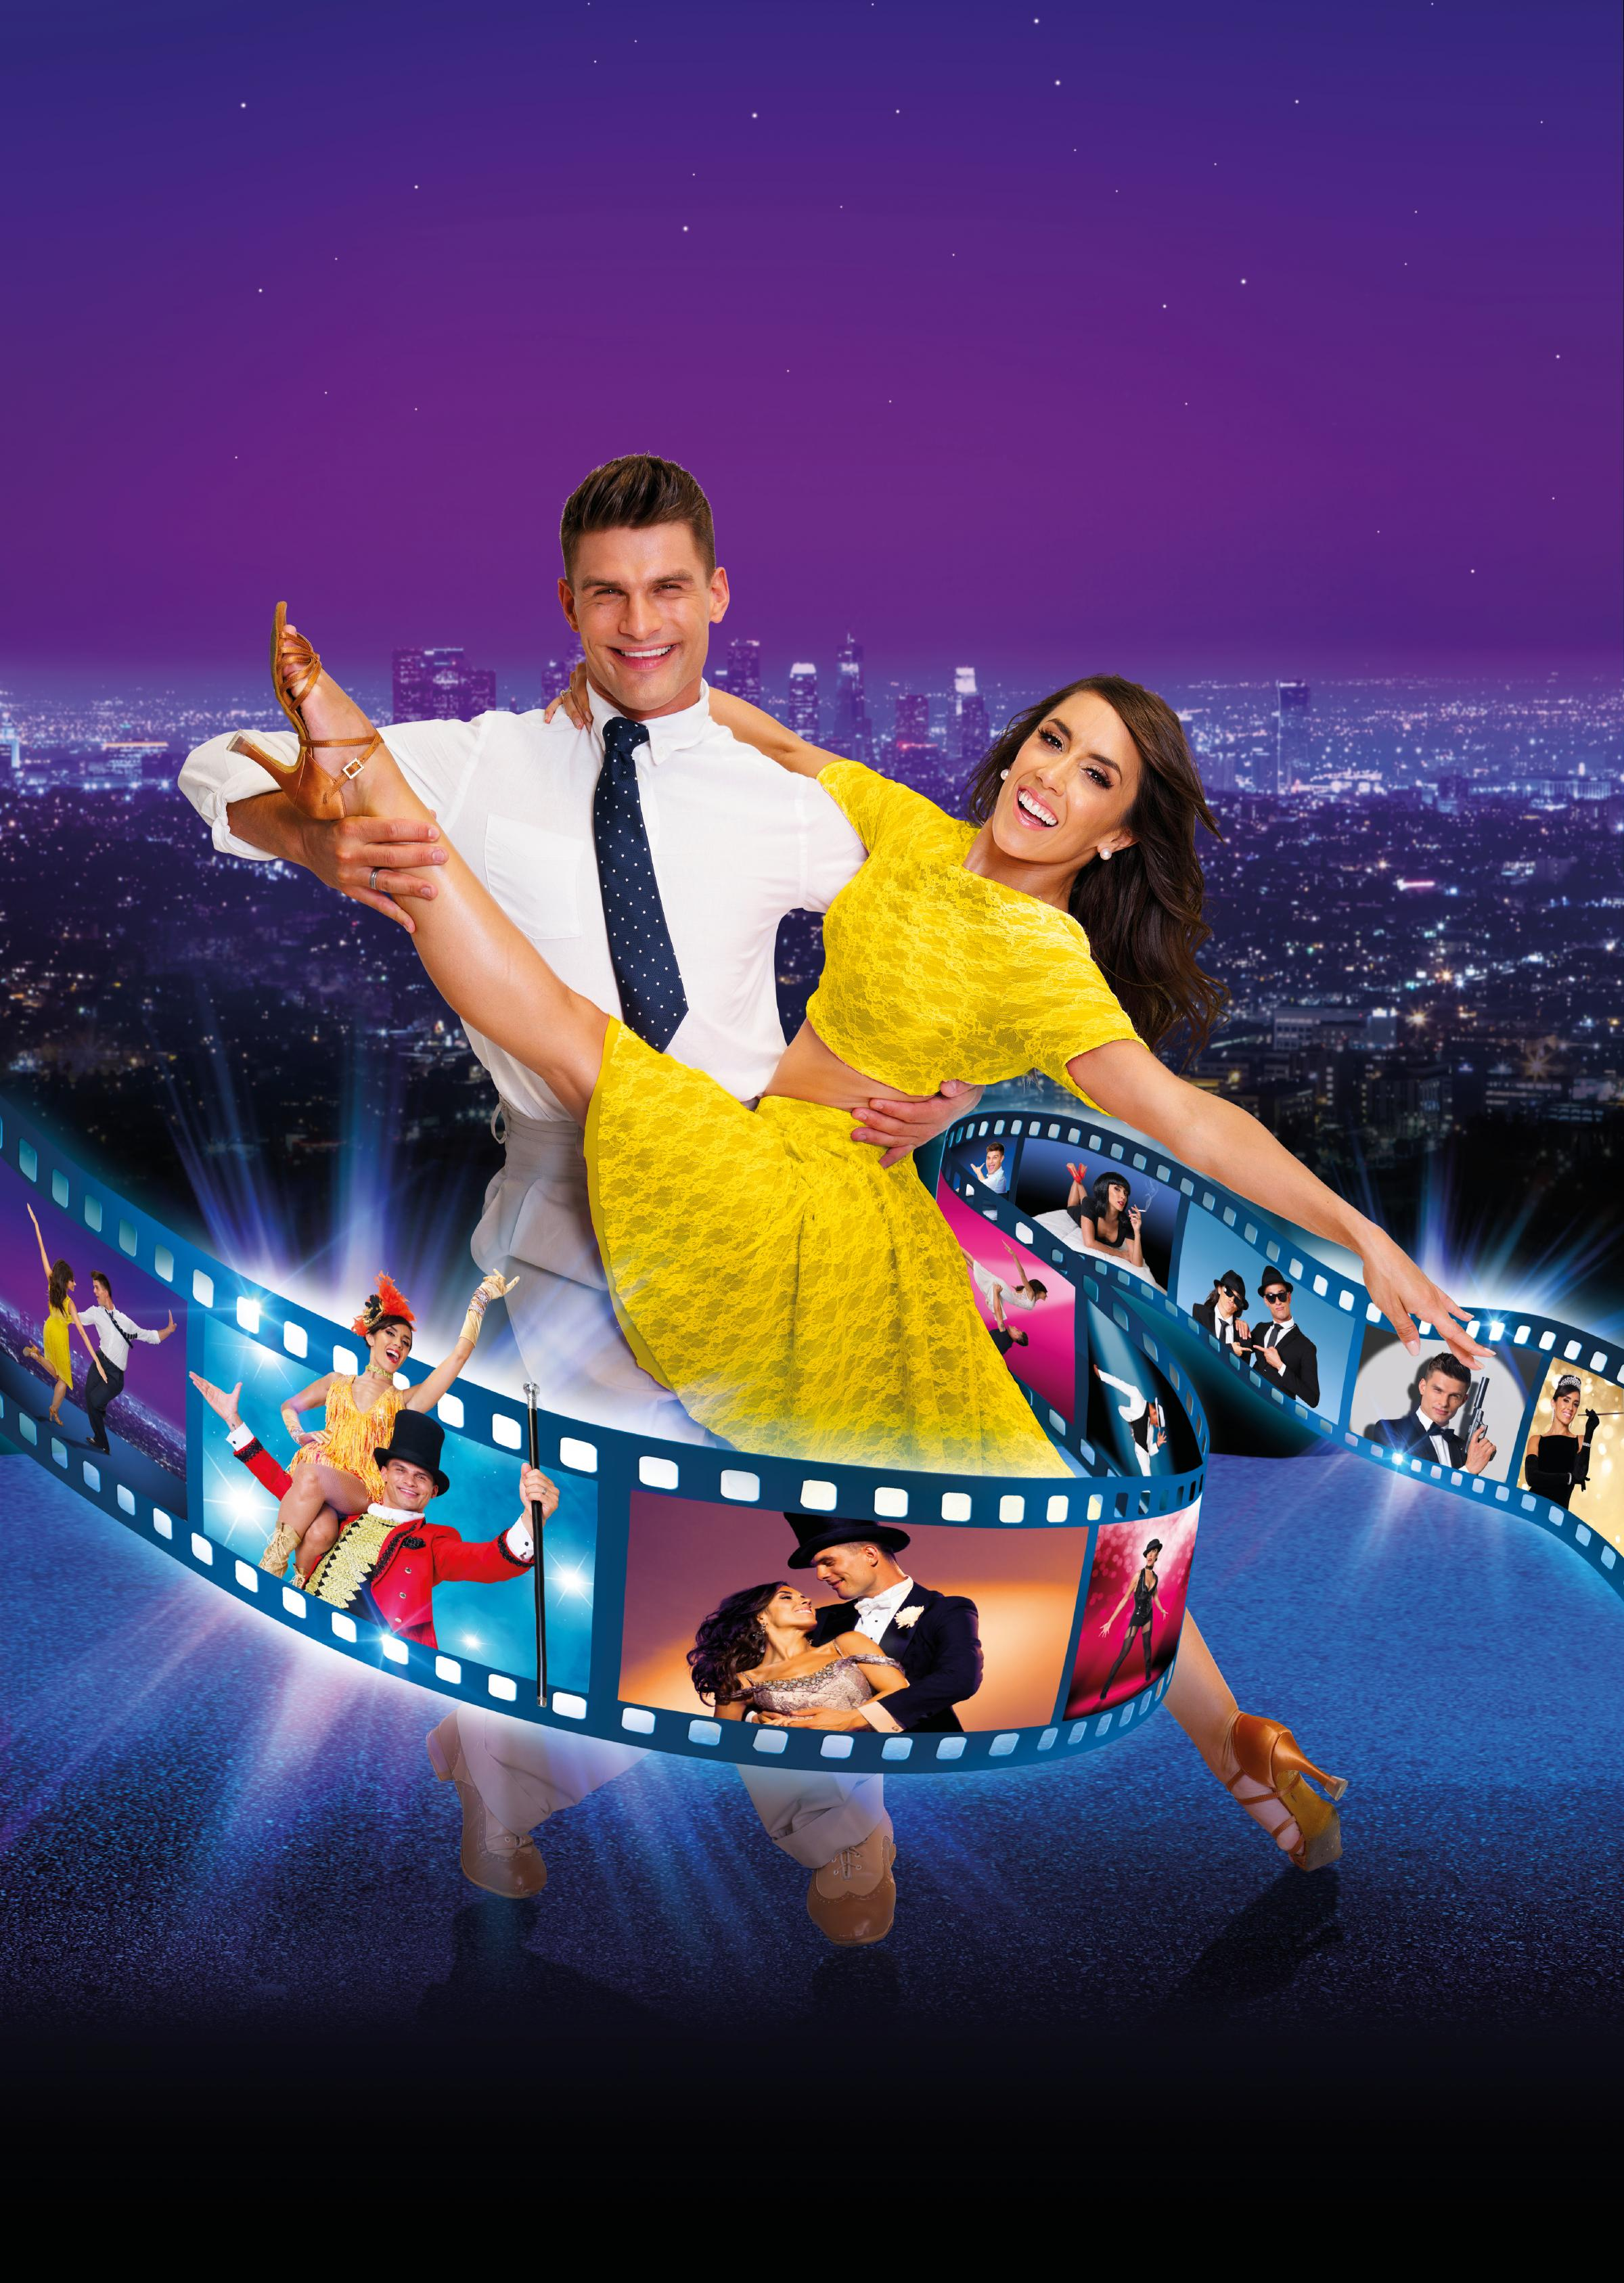 Strictly Come Dancing's very own Aljaz Skorjanec and Janette Manrara